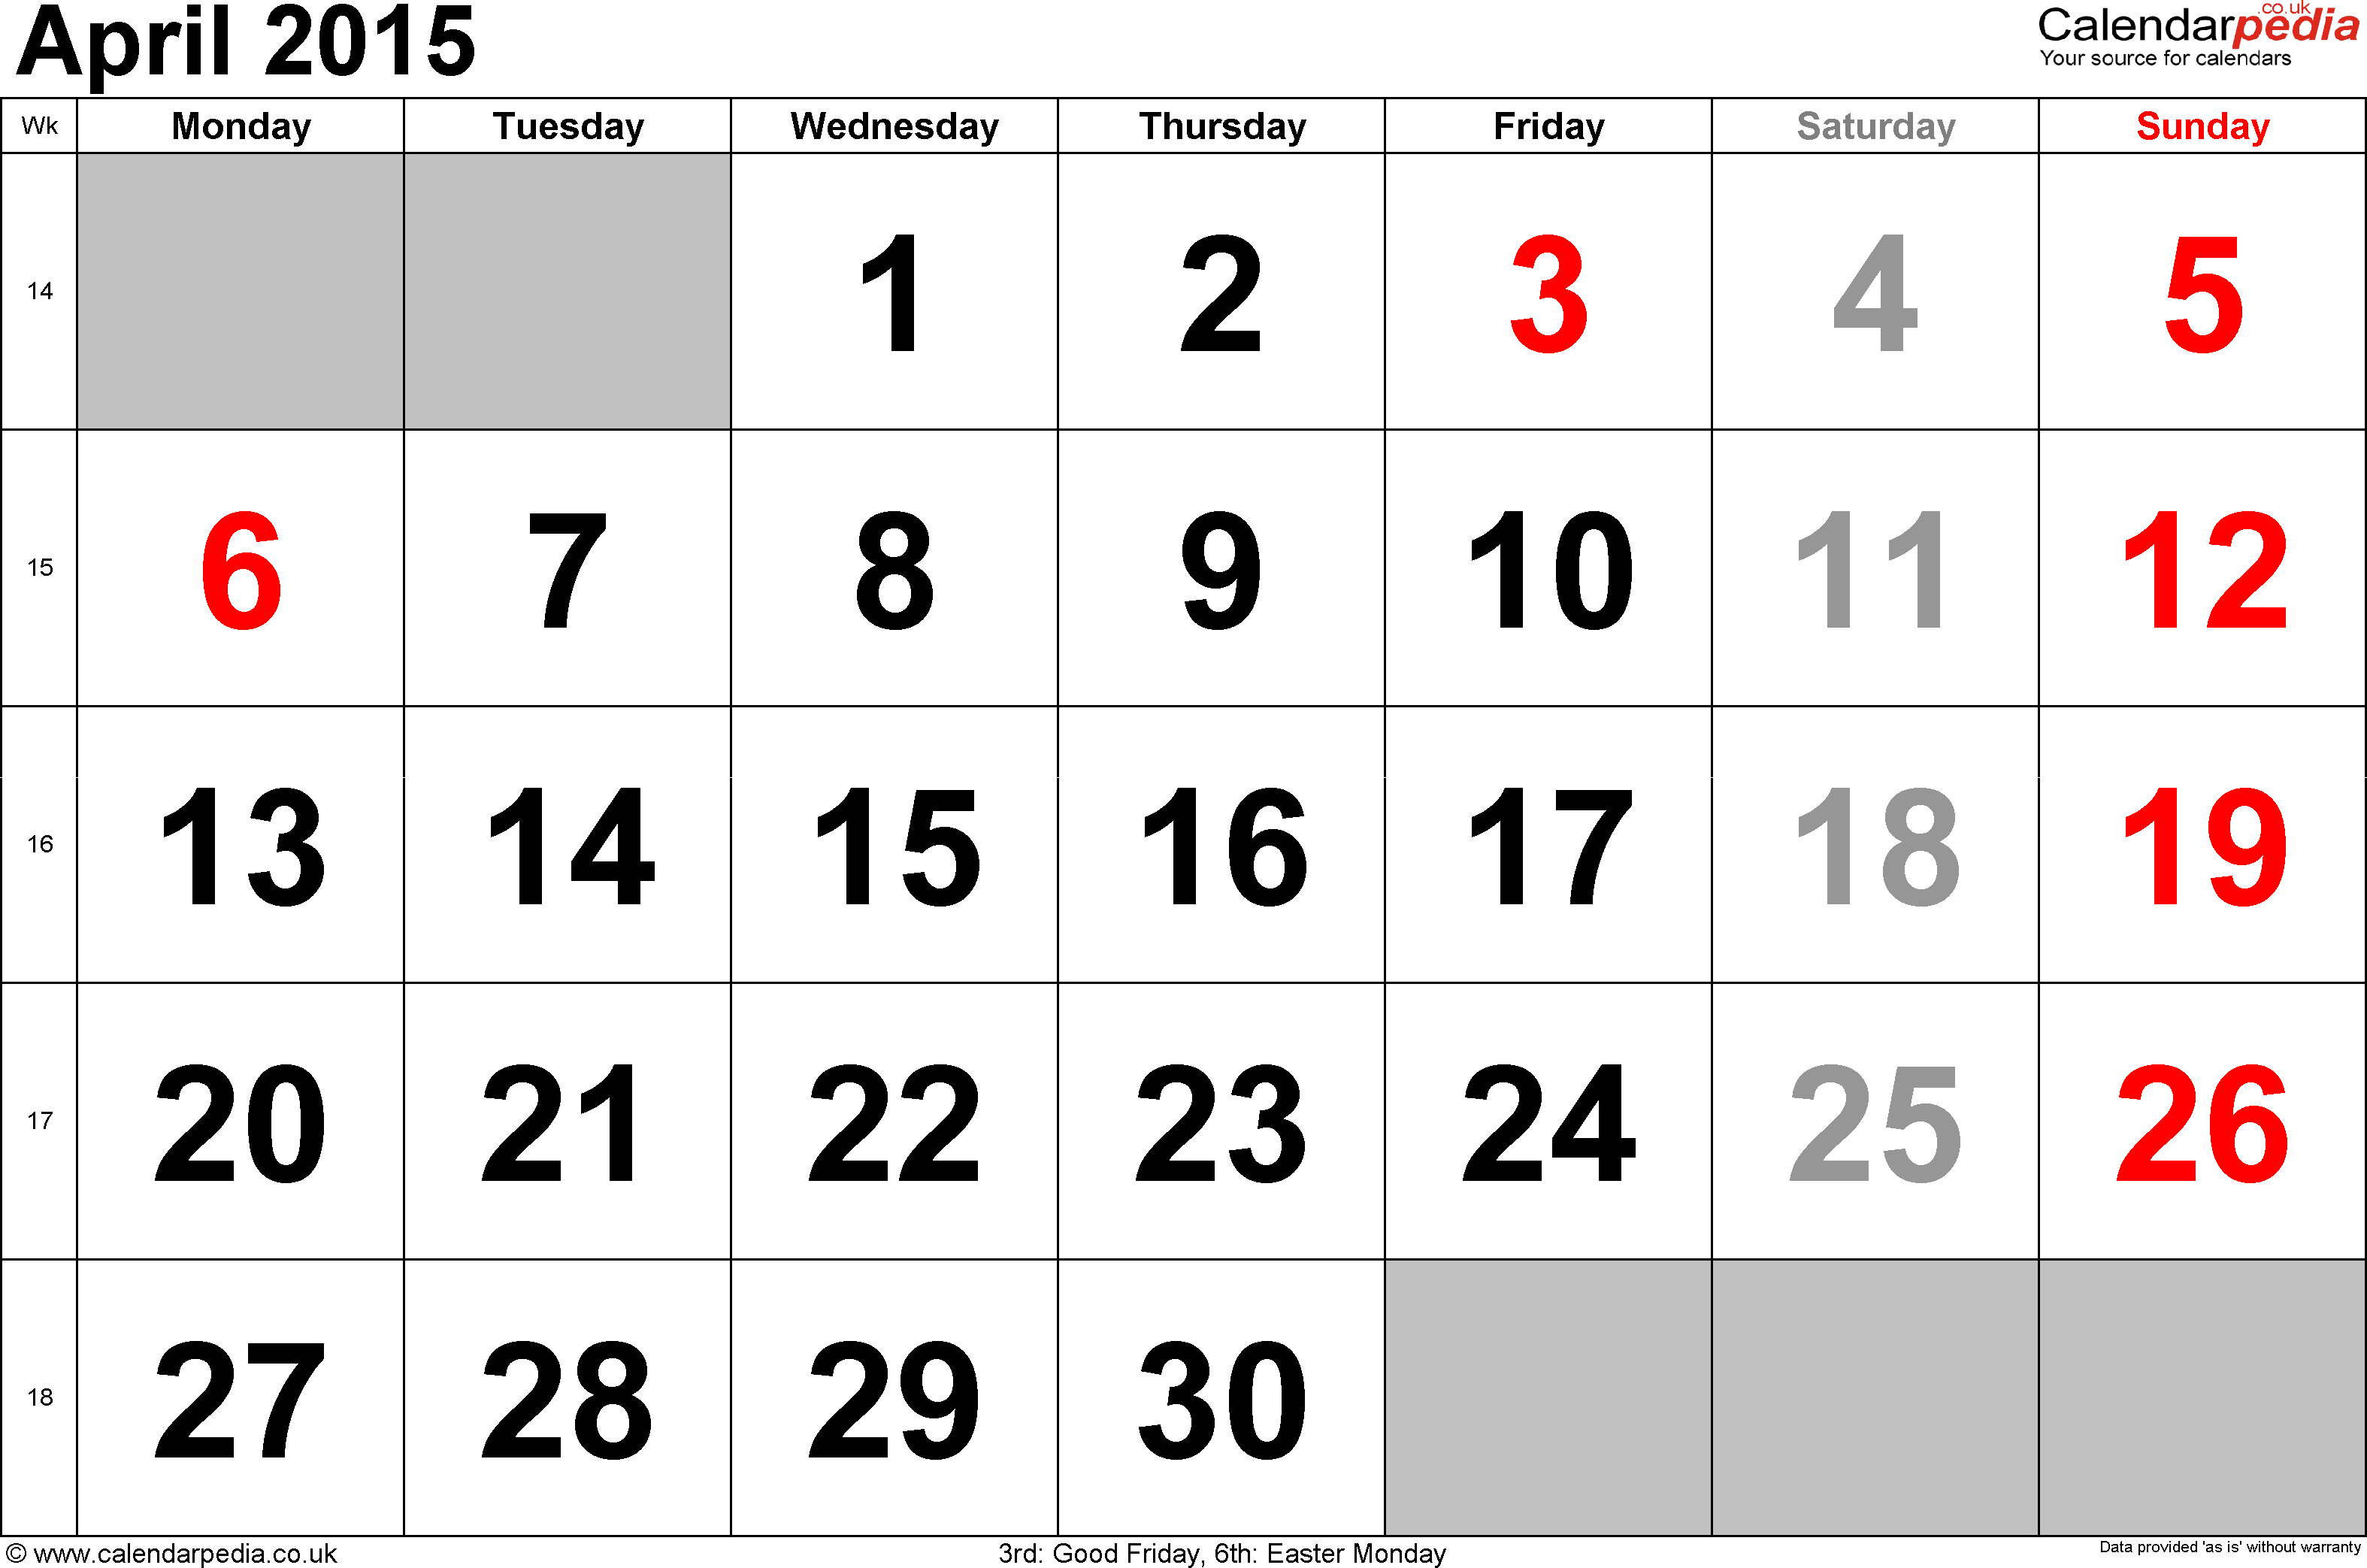 Calendar April 2015, landscape orientation, large numerals, 1 page, with UK bank holidays and week numbers